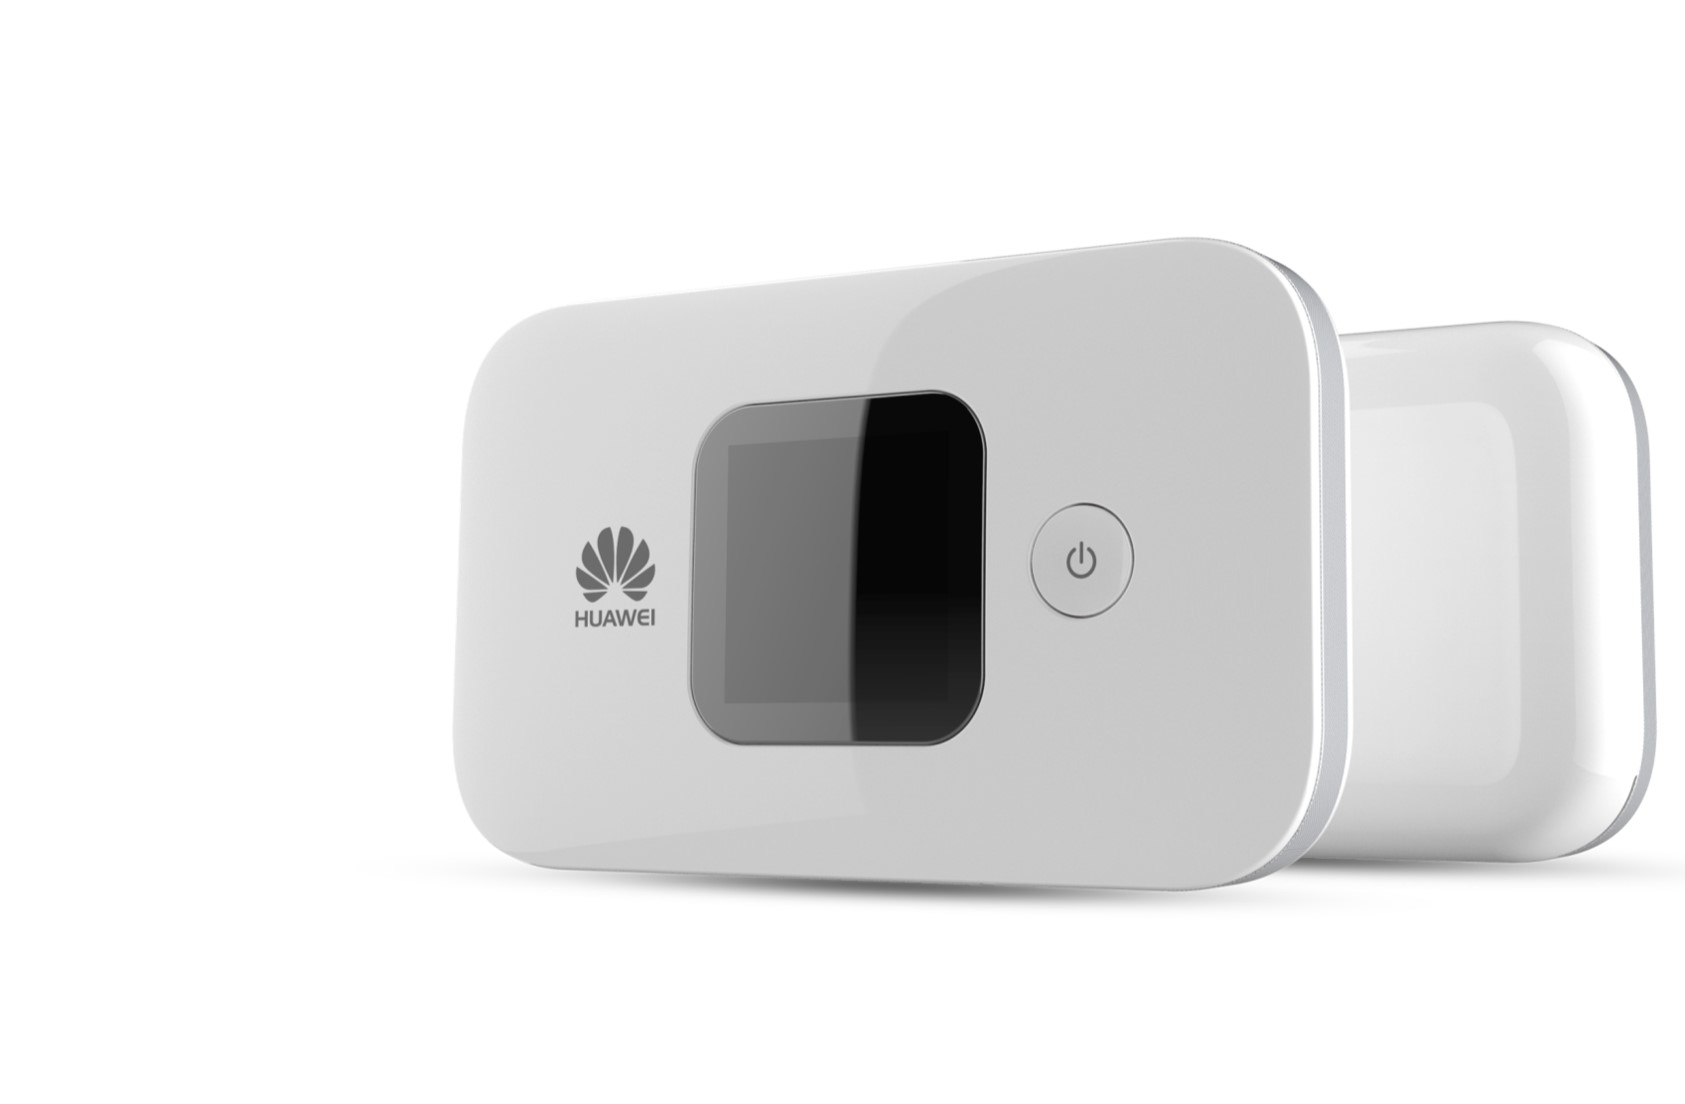 Huawei And Telkom Are Teaming Up To Give You One Heck Of A Data Deal 10gb Pm For R99 Stuff